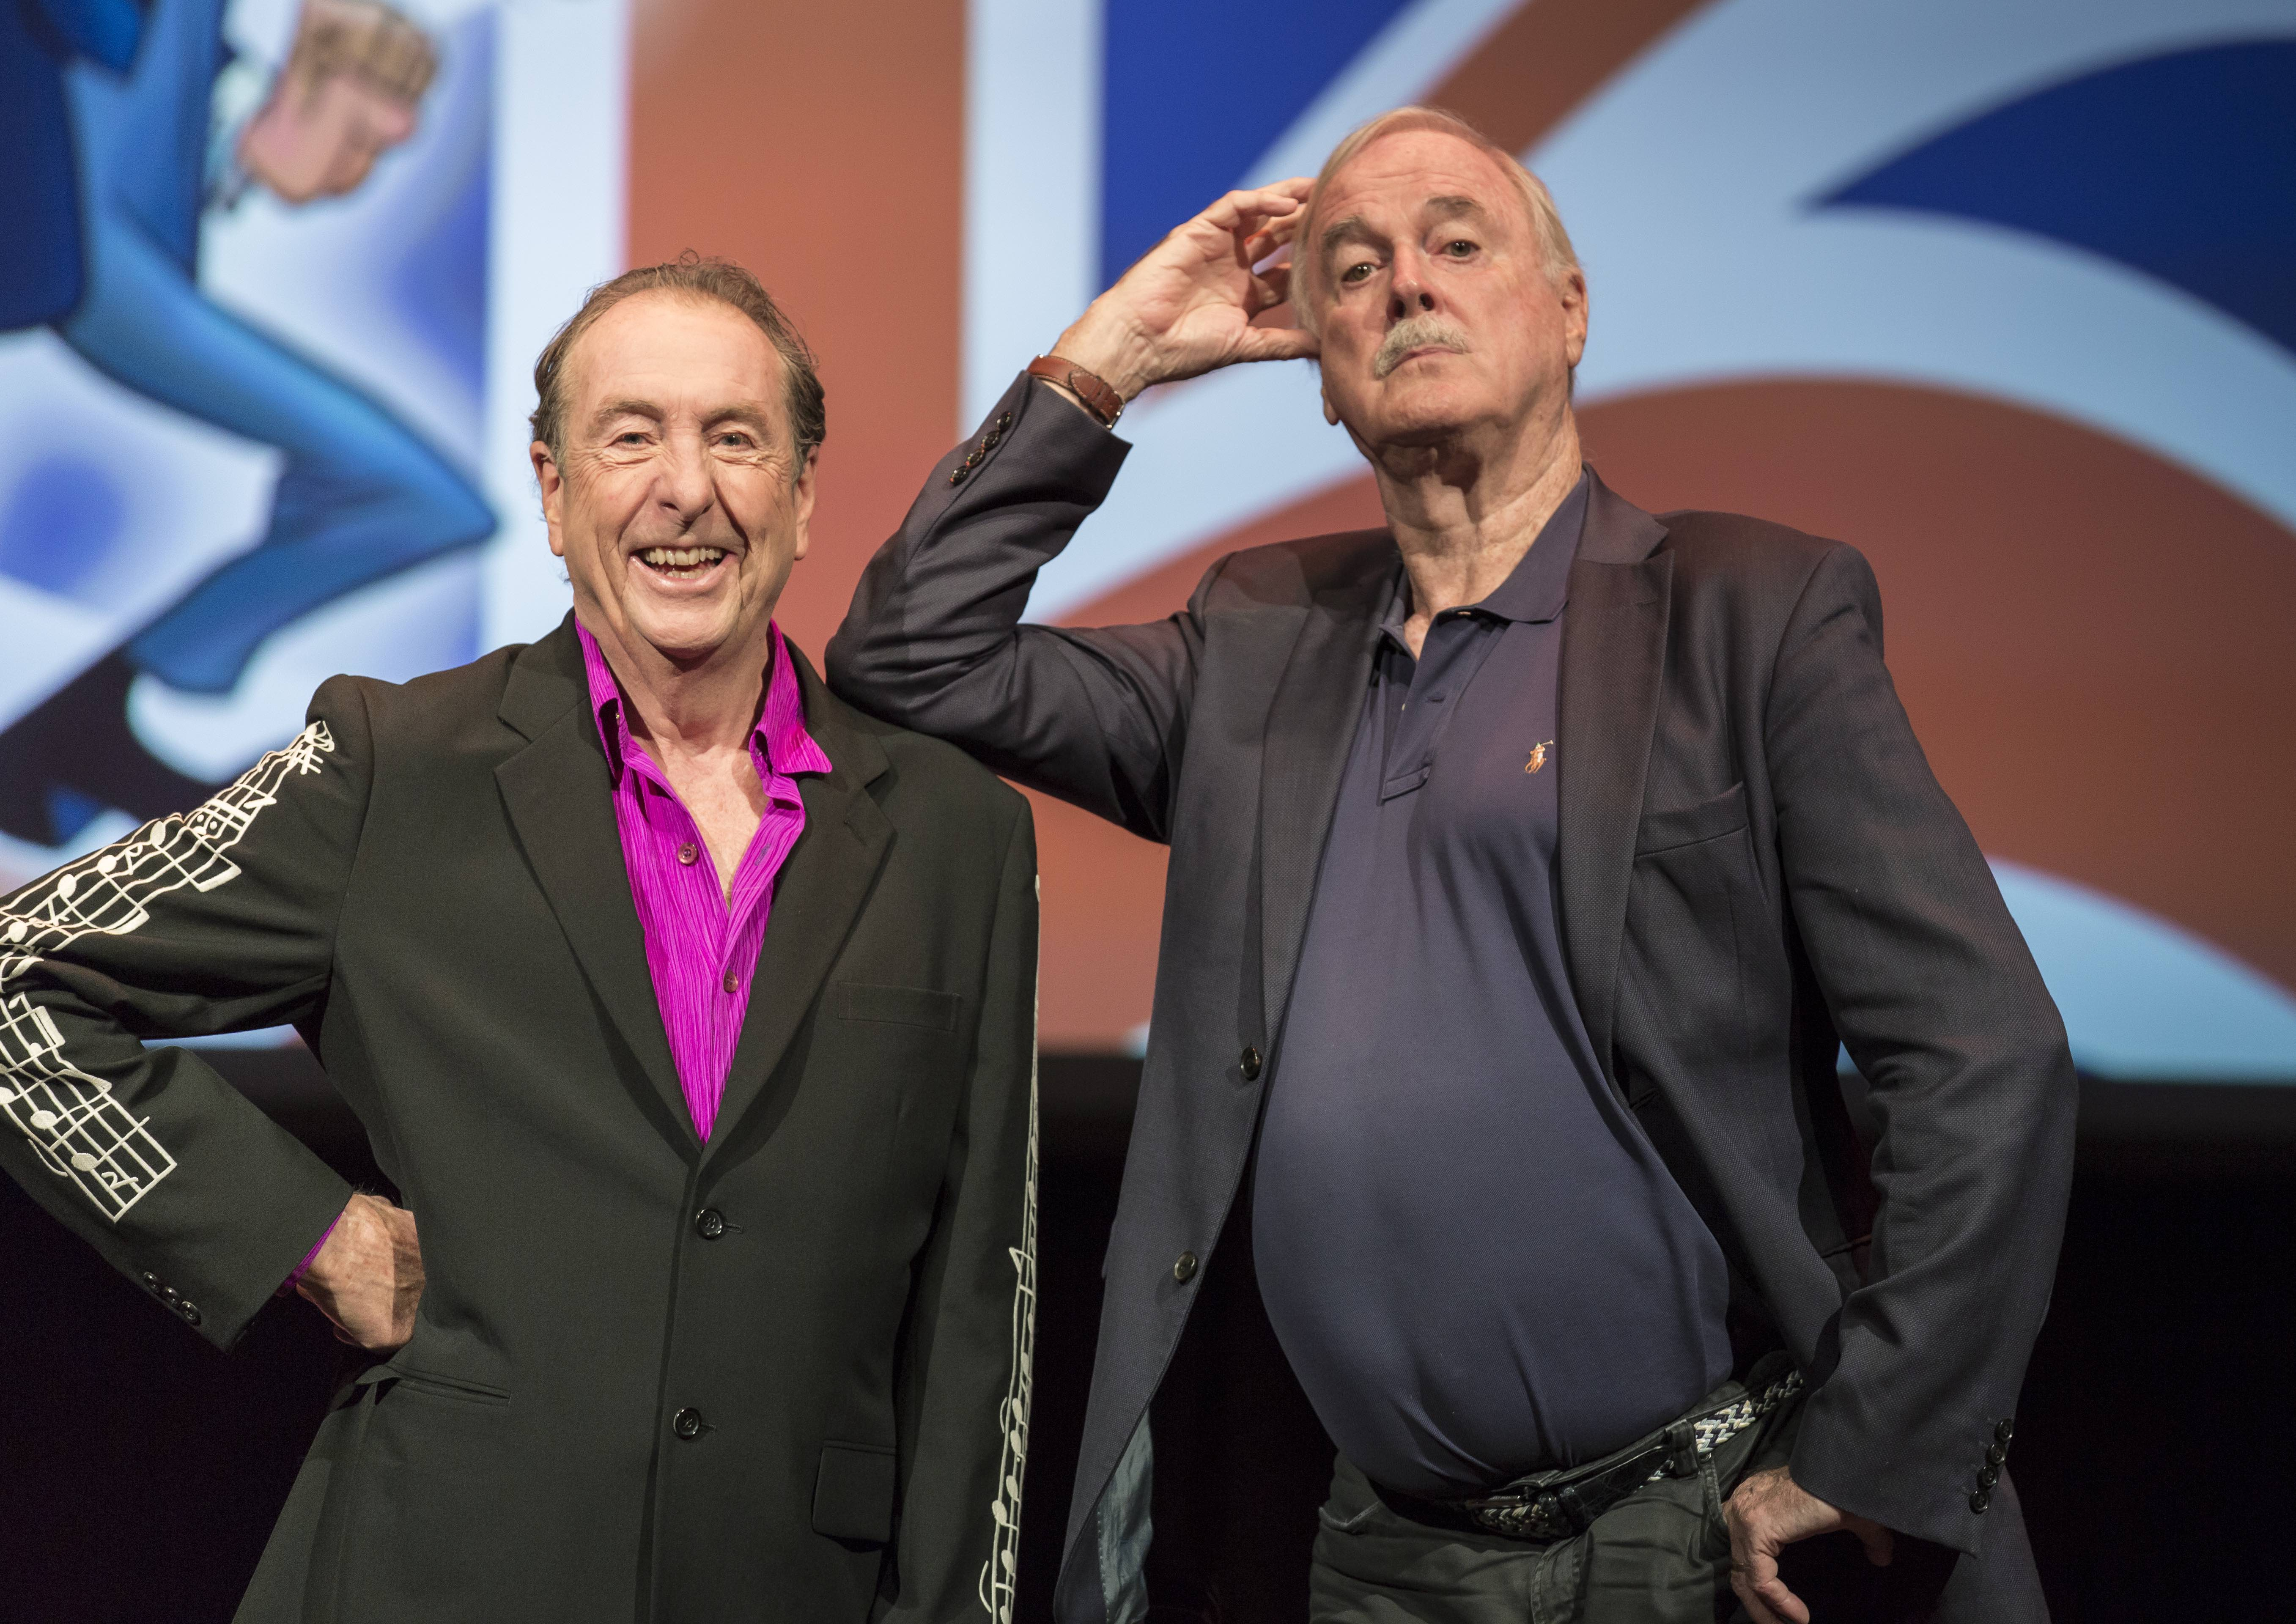 foto The Last Word: Eric Idle on Wearing Dresses, What George Harrison Taught Him, and More